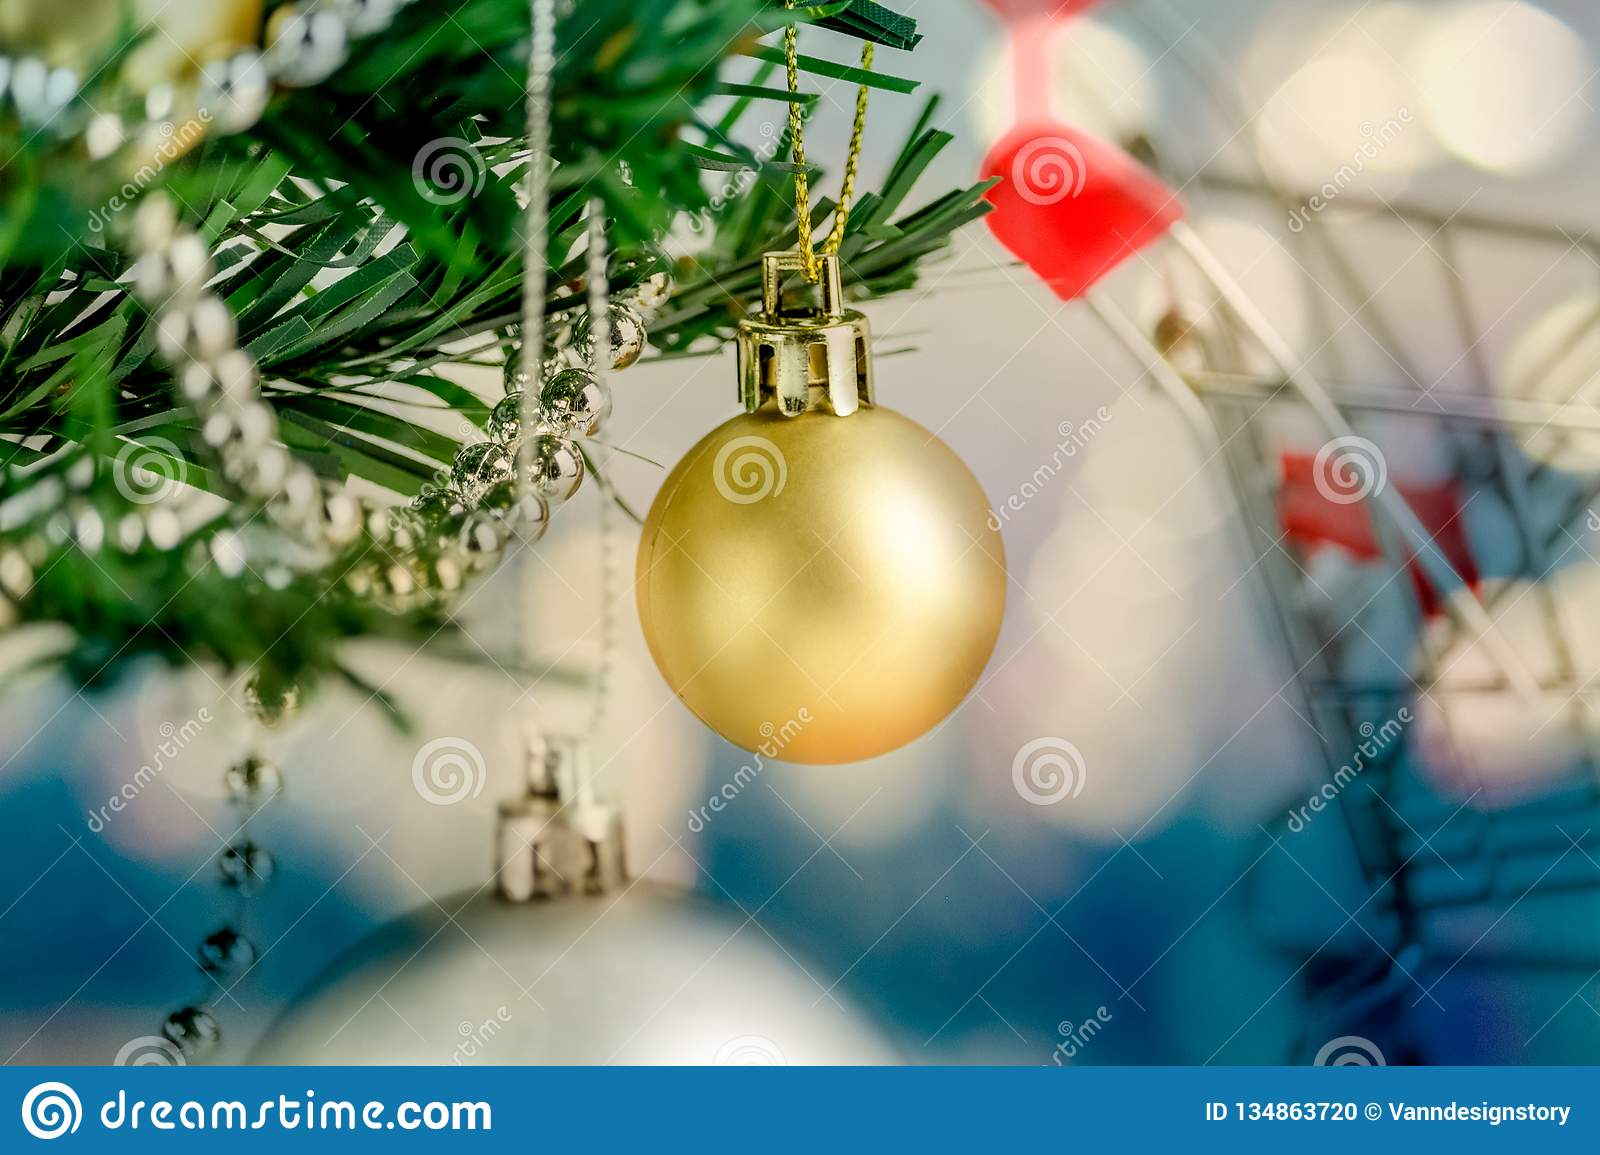 Close-up of Christmas tree is decorated with shopping cart for shopping and bokeh blue tone background, gold and silver balls on a